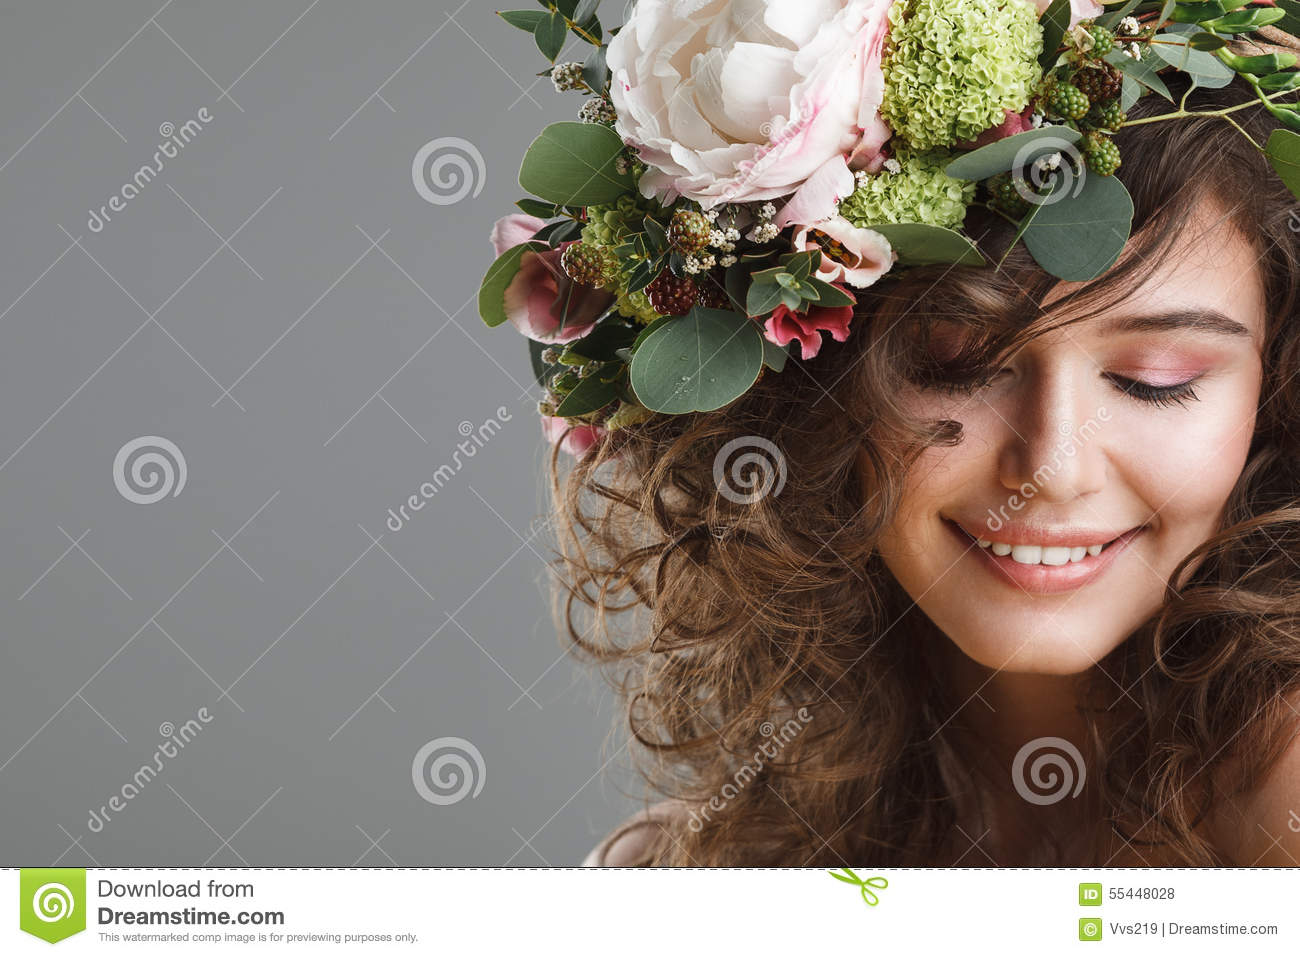 Stubio Beauty Portrait Of Cute Young Woman With Flower Crown Stock